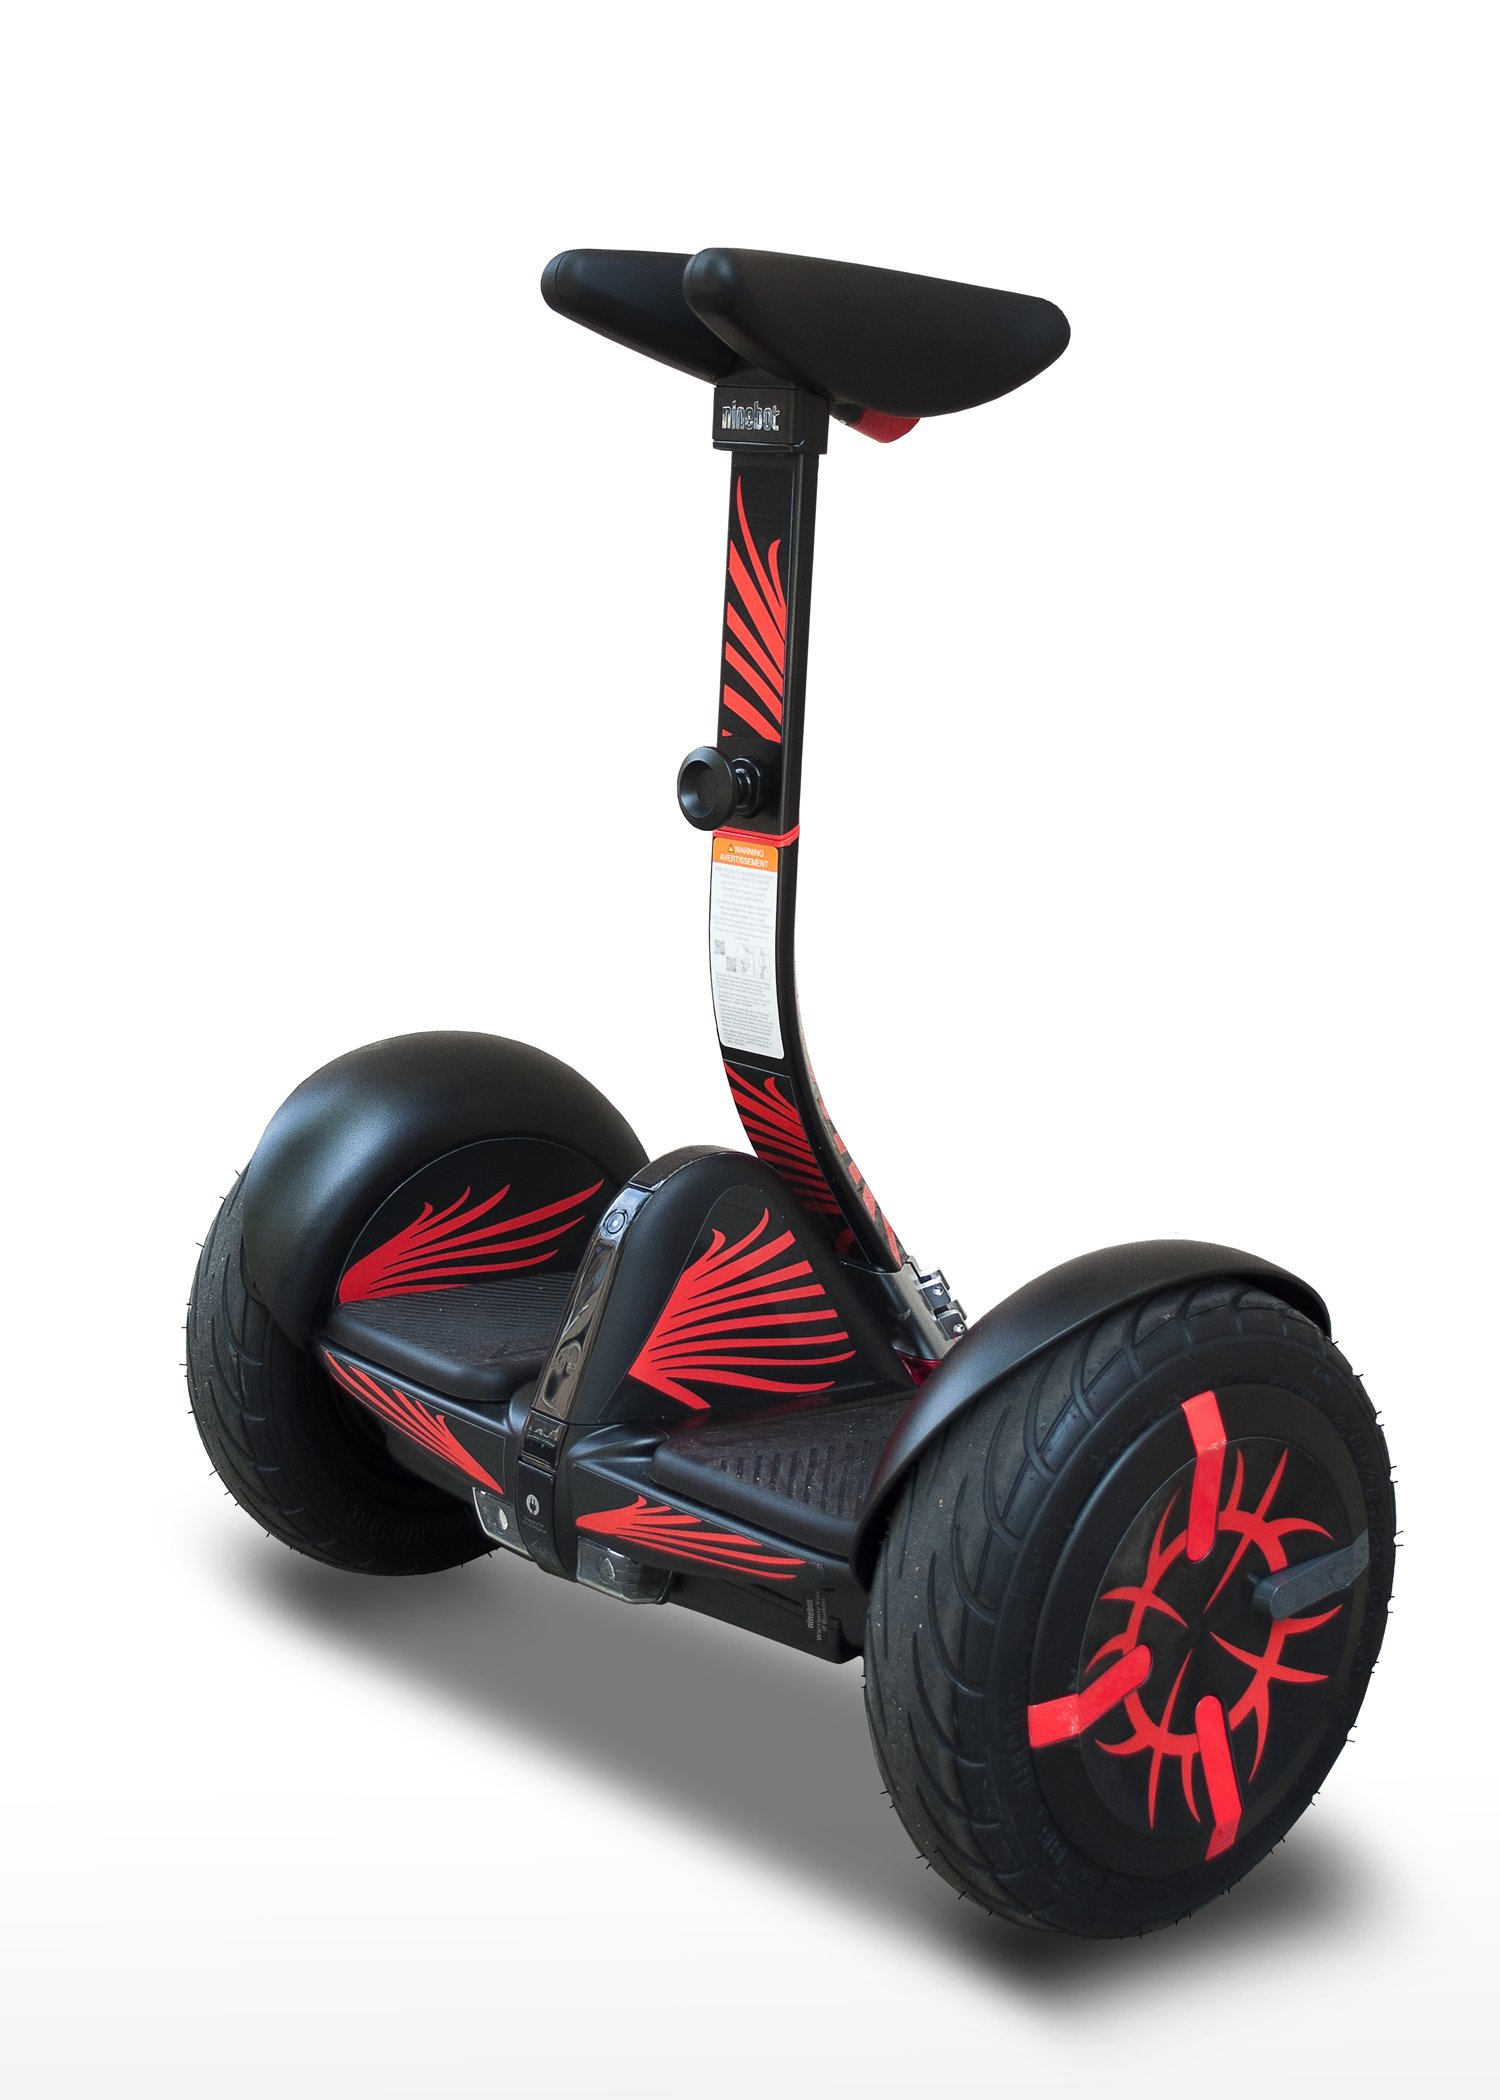 More4Mini Kit for Segway Mini Pro - Flames (Does not Include Segway MiniPro) by More4Mini